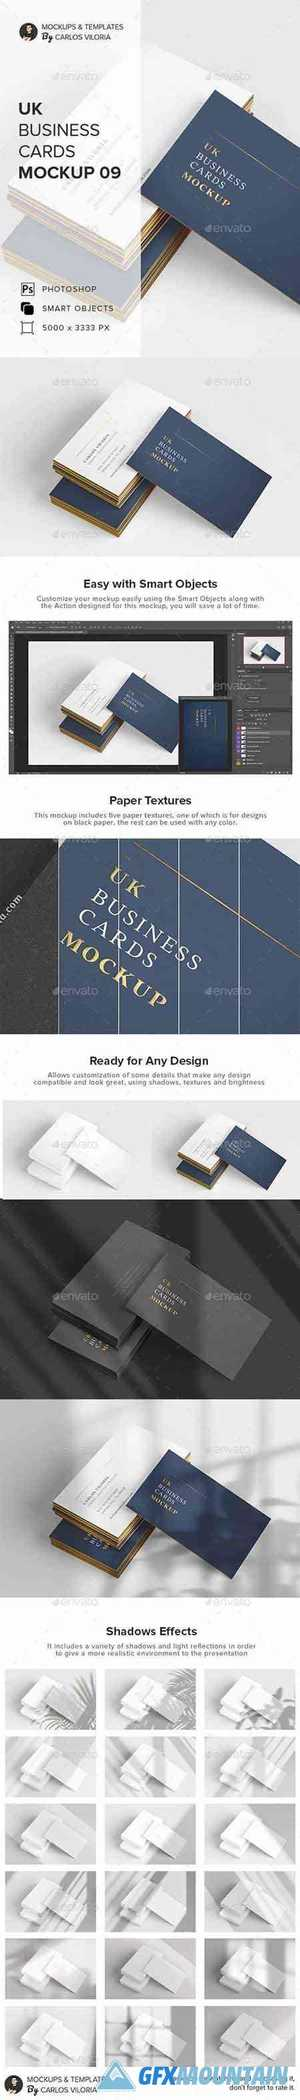 UK Business Cards Mockup 09 27826545